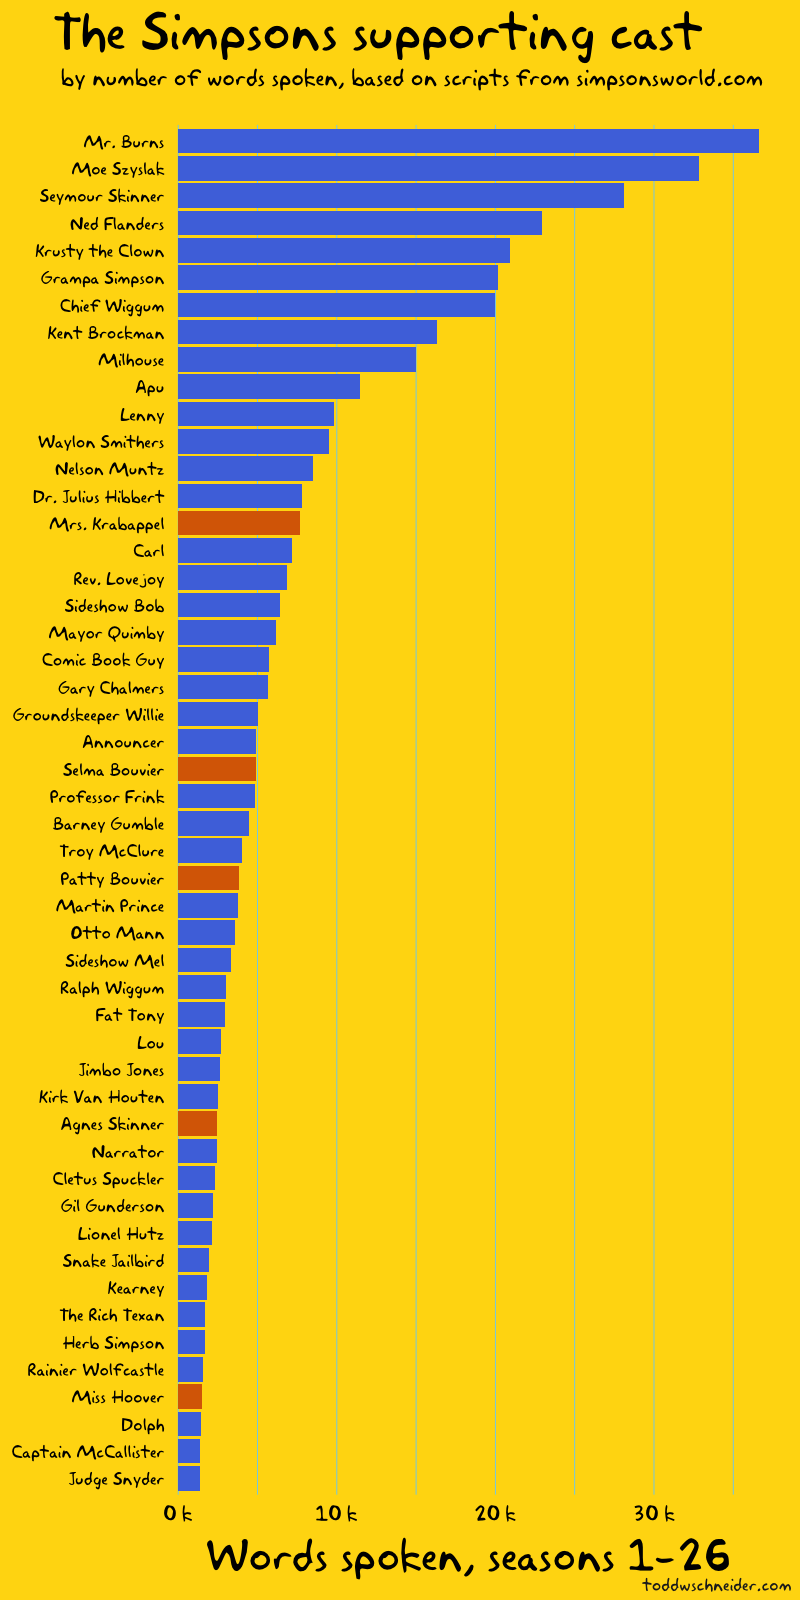 Which Supporting Character on The Simpsons Has Spoken the Most Words?